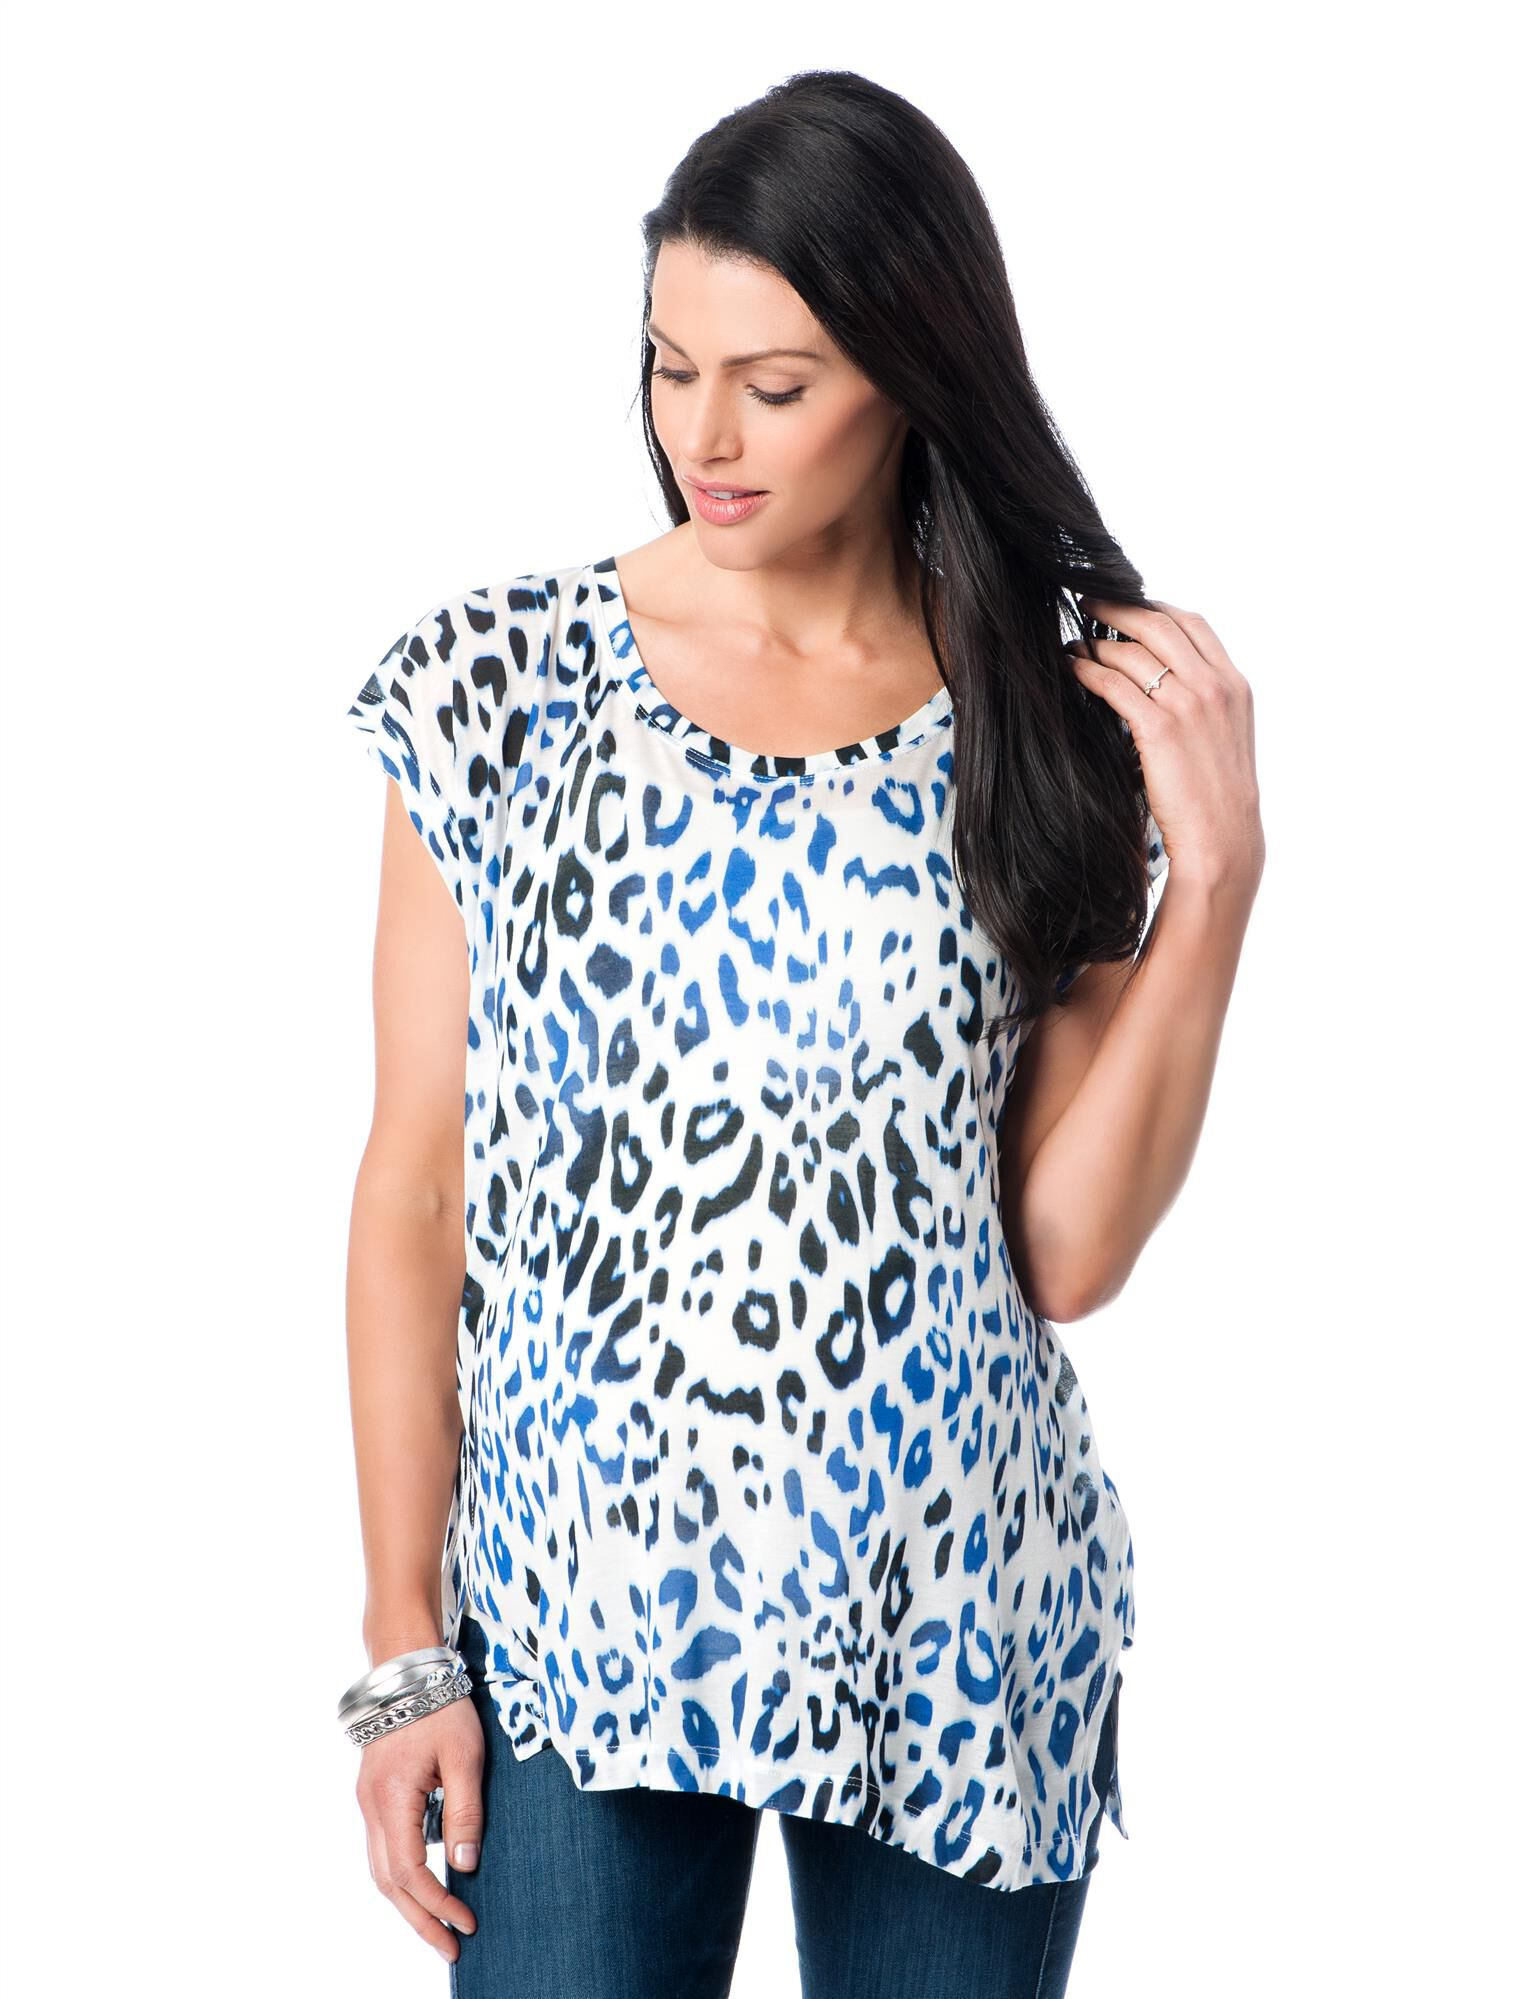 Majestic Bias Cut Maternity Top